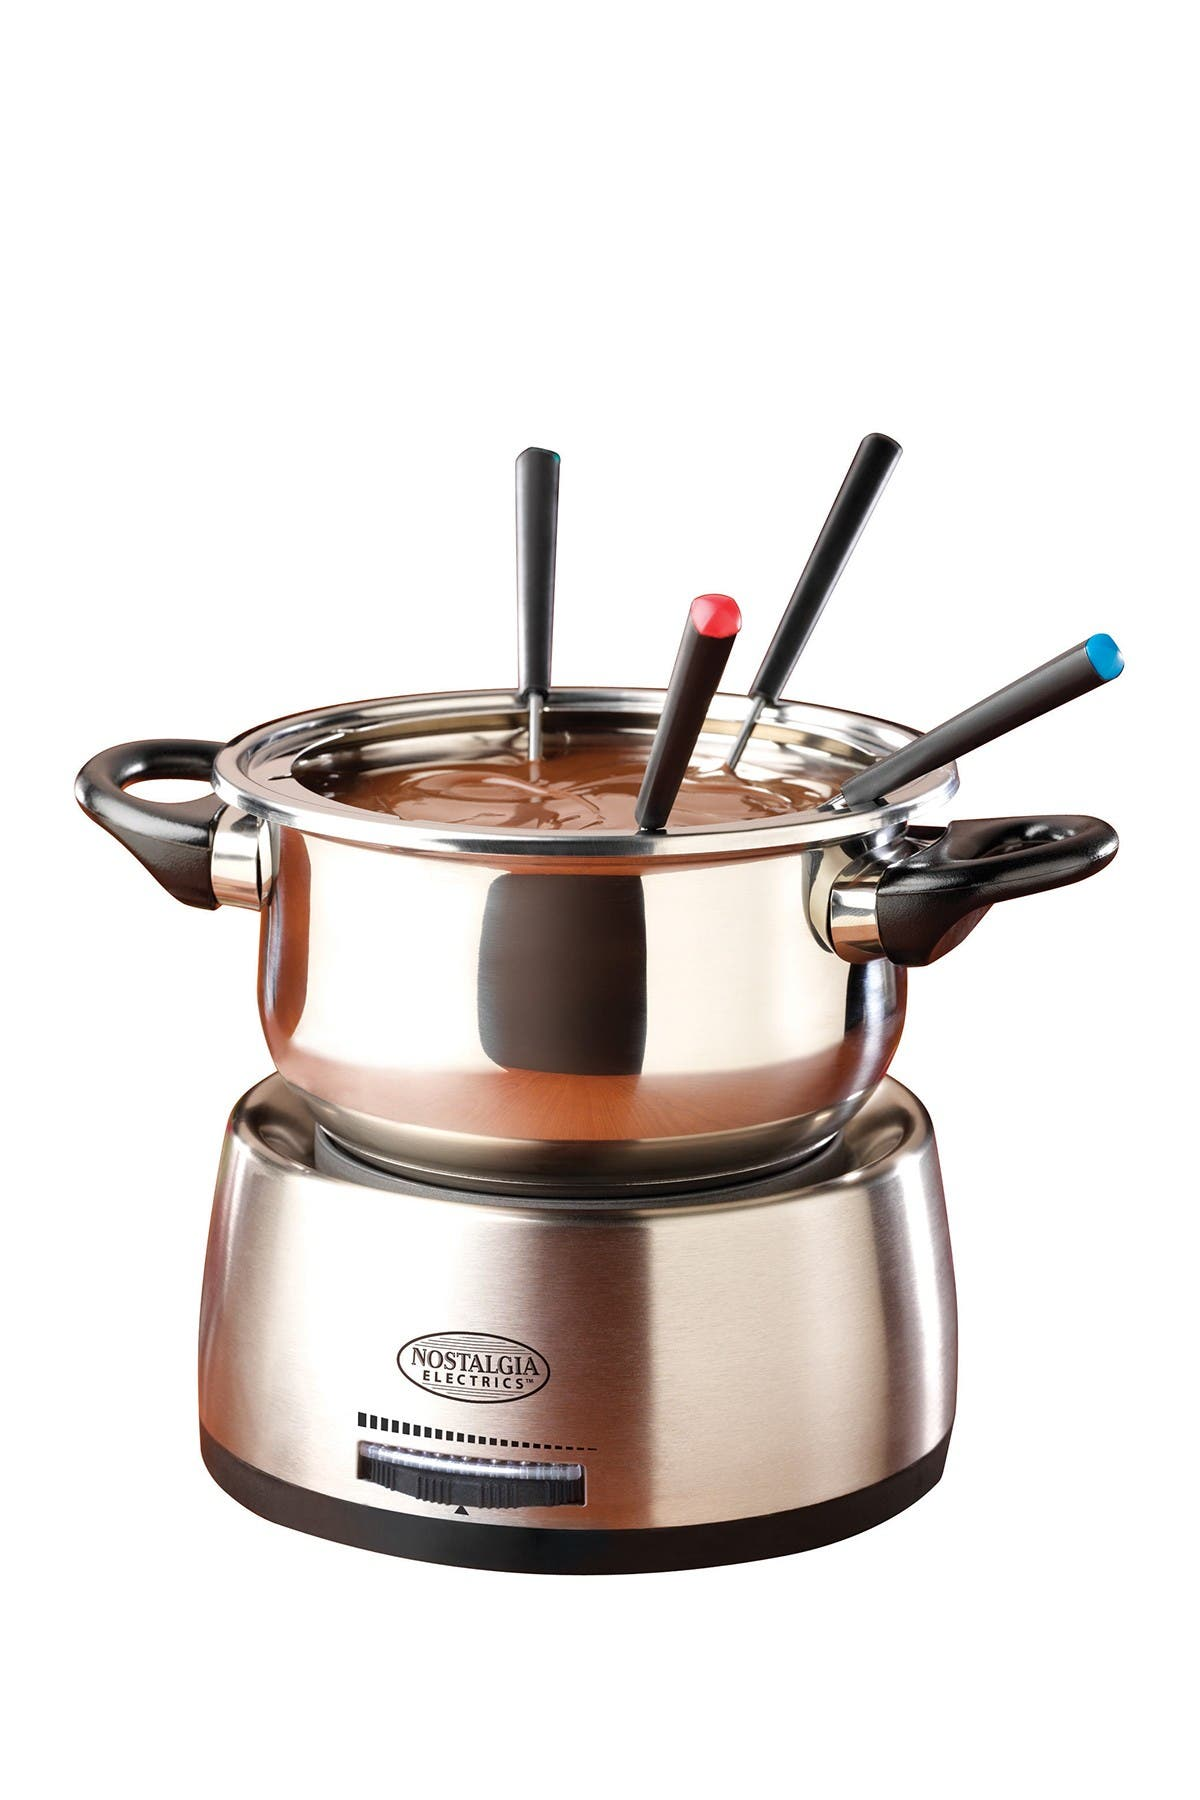 Image of Nostalgia Stainless Steel Electric Fondue Pot